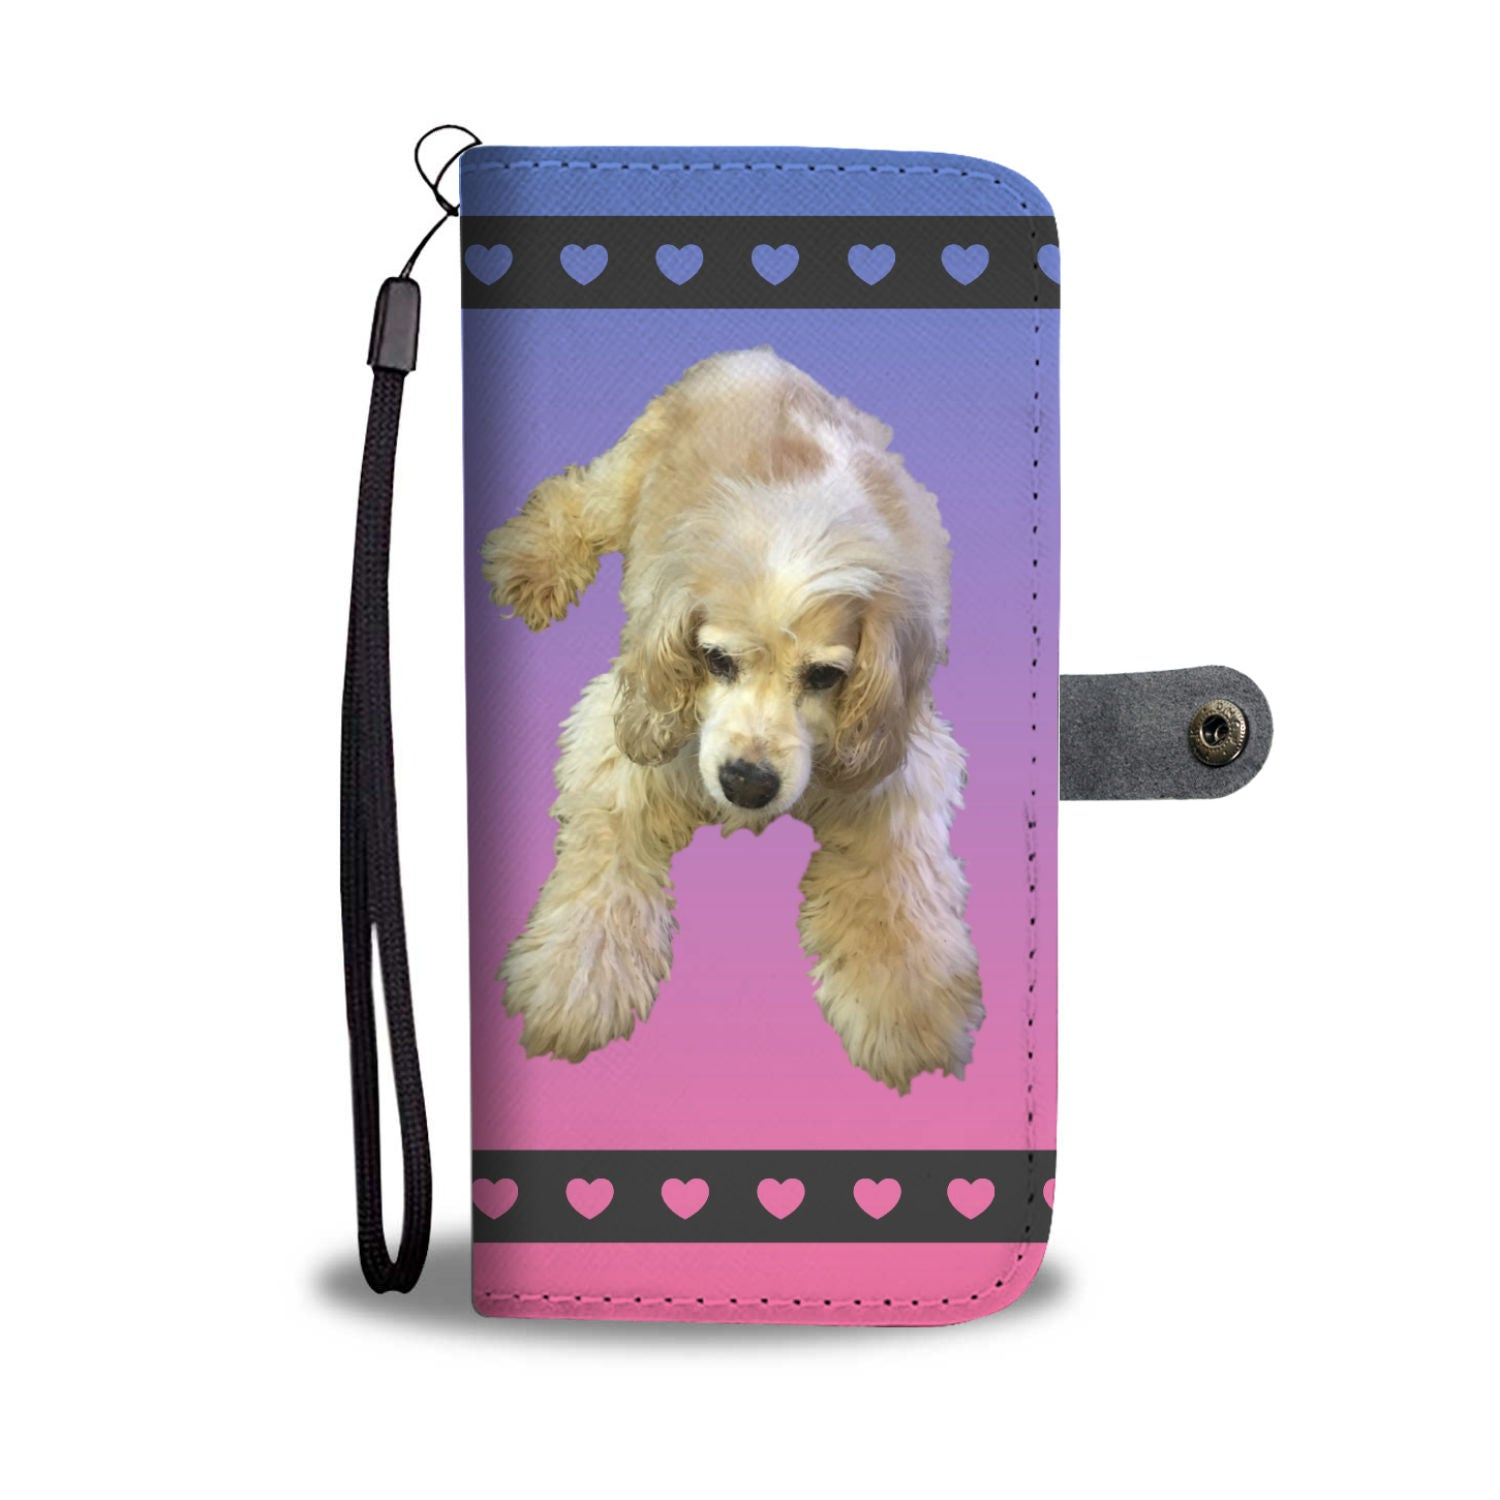 Cocker Spaniel Phone Case Wallet -Tan